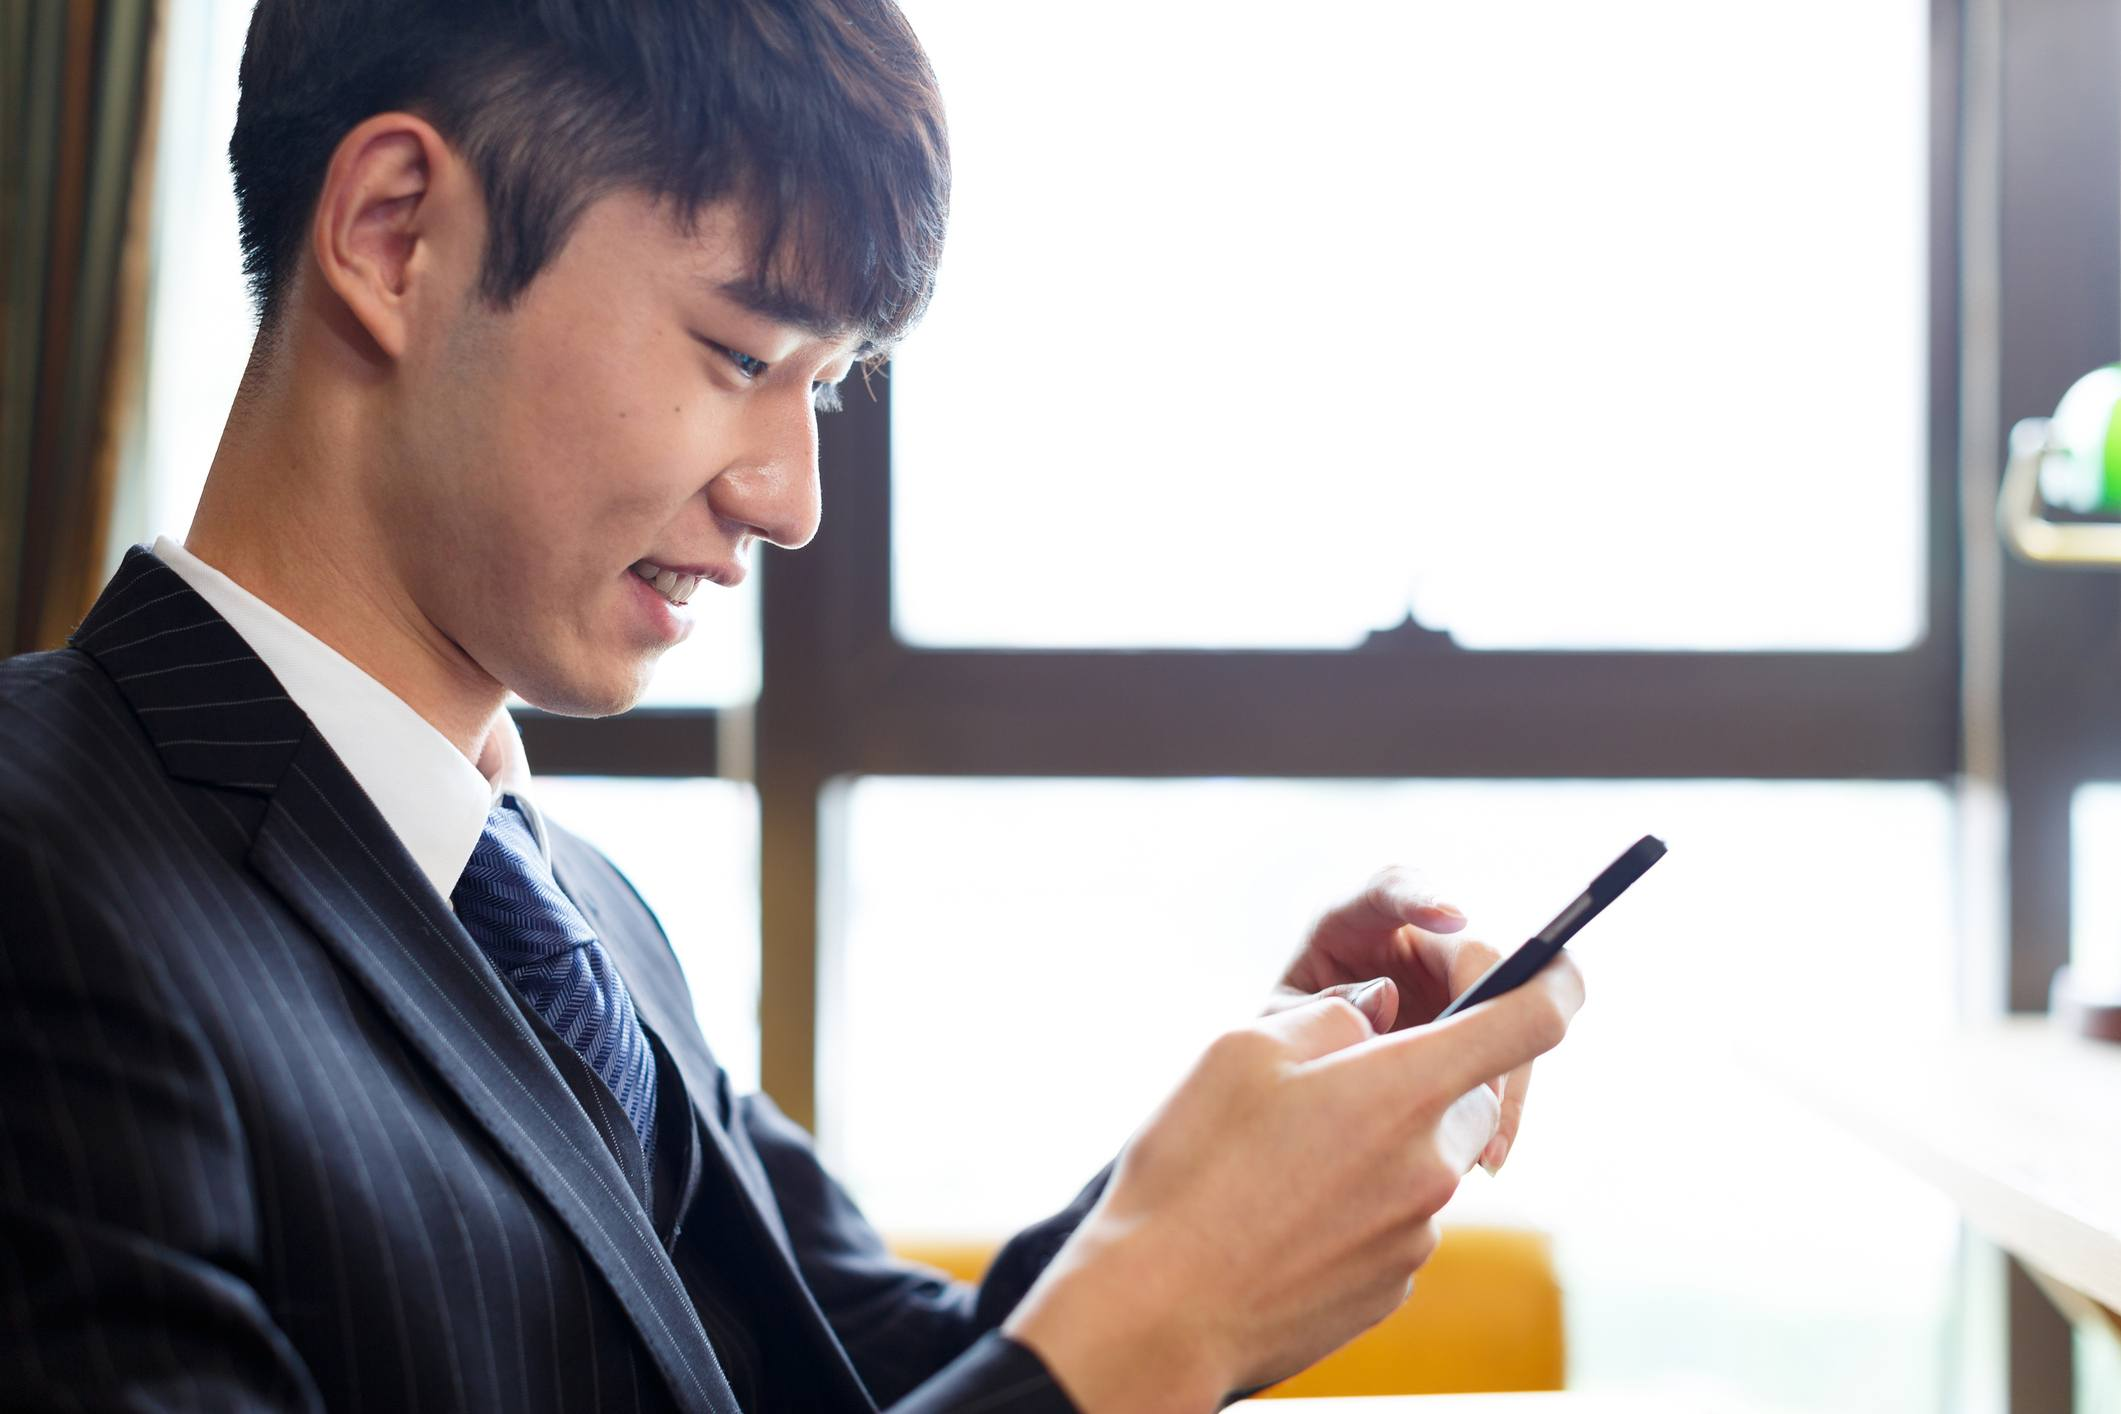 handsome man playing with cellphone